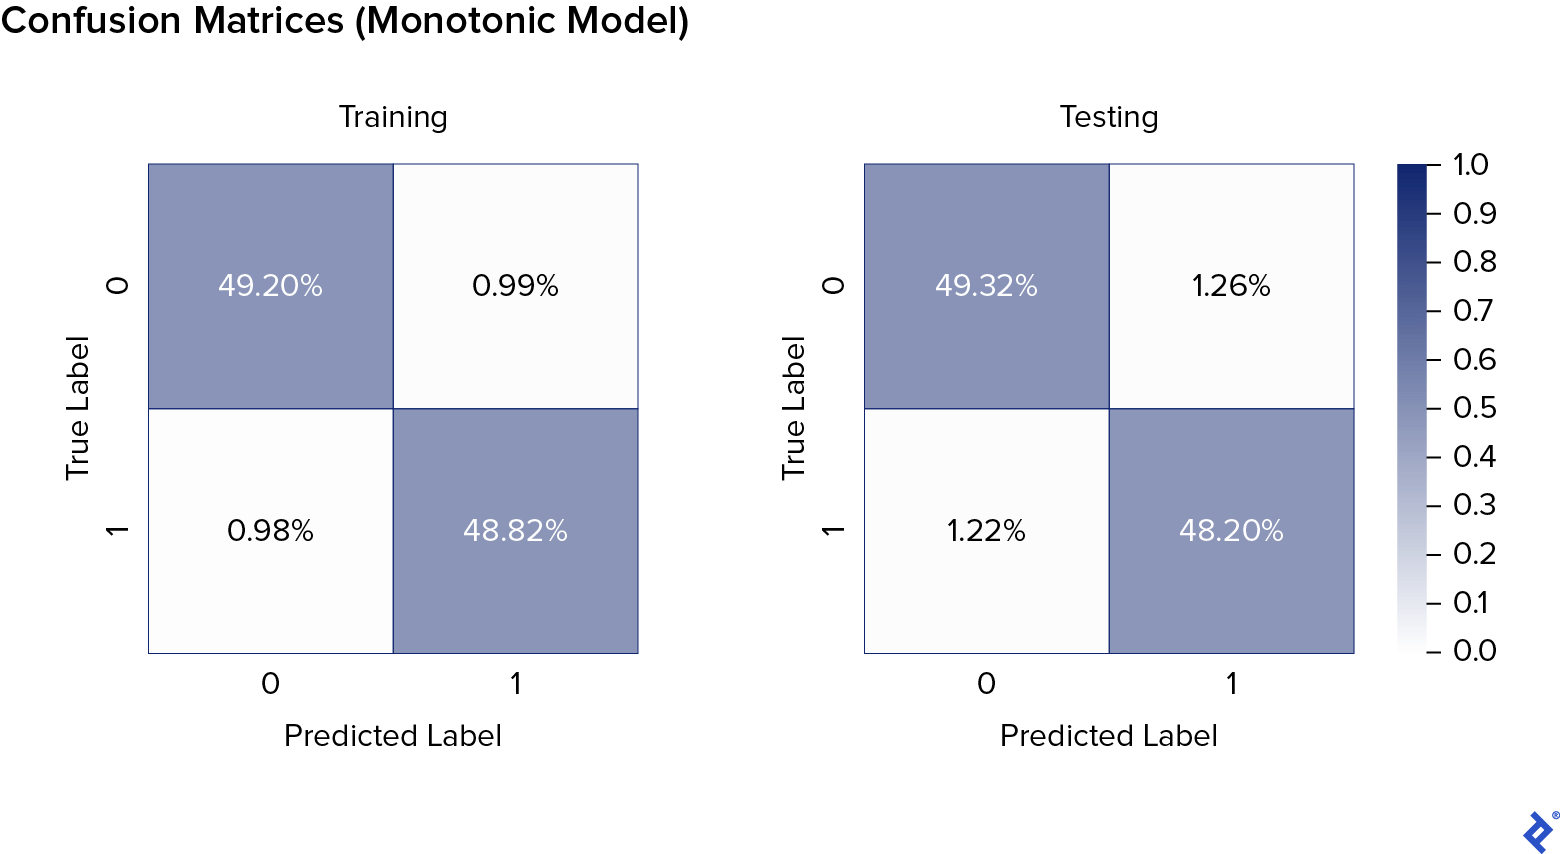 """Monotonic AI model's training confusion matrix, a two-by-two checkerboard. The Y axis is called """"True Label,"""" with zero at the top and one at the bottom. The X axis is called """"Predicted Label,"""" with zero on the left and one on the right. The color scale goes from white at zero to dark blue at 0.5. The upper-left and lower-right squares are dark blue, at 49.20% and 48.82% respectively. The upper-right and lower-left squares are close to white, at 0.99% and 0.98% respectively. To the right is a very similar chart for testing rather than training, with, in reading order, 49.32%, 1.26%, 1.22%, and 48.20%."""